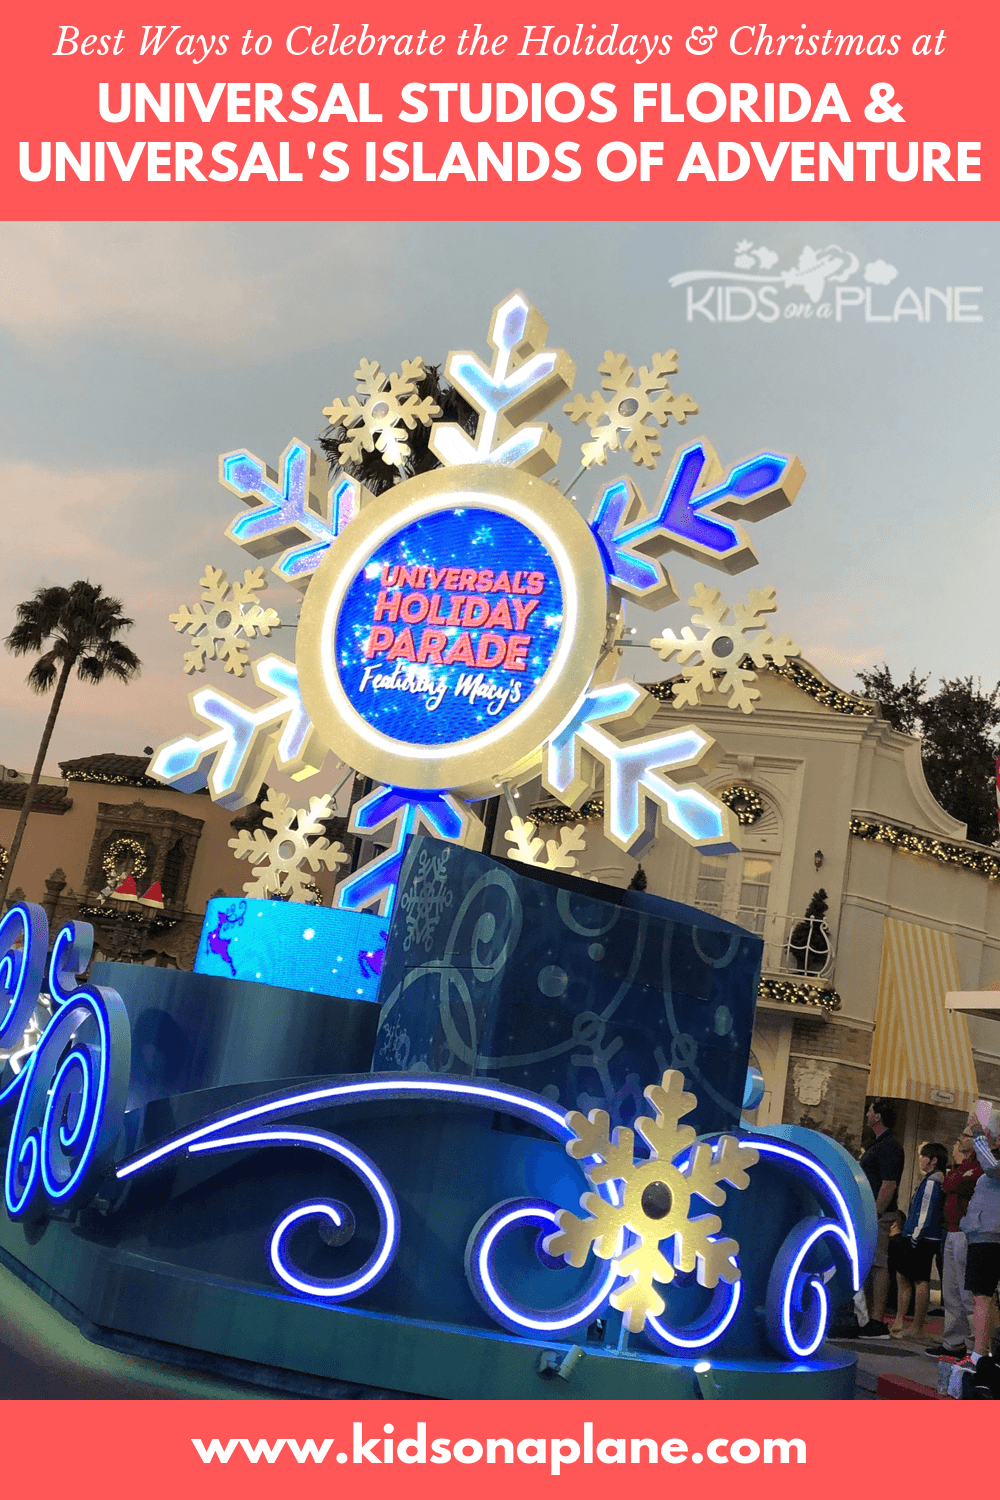 Celebrate Christmas Holidays at Universal Orlando Florida - Best Things to Do with Kids